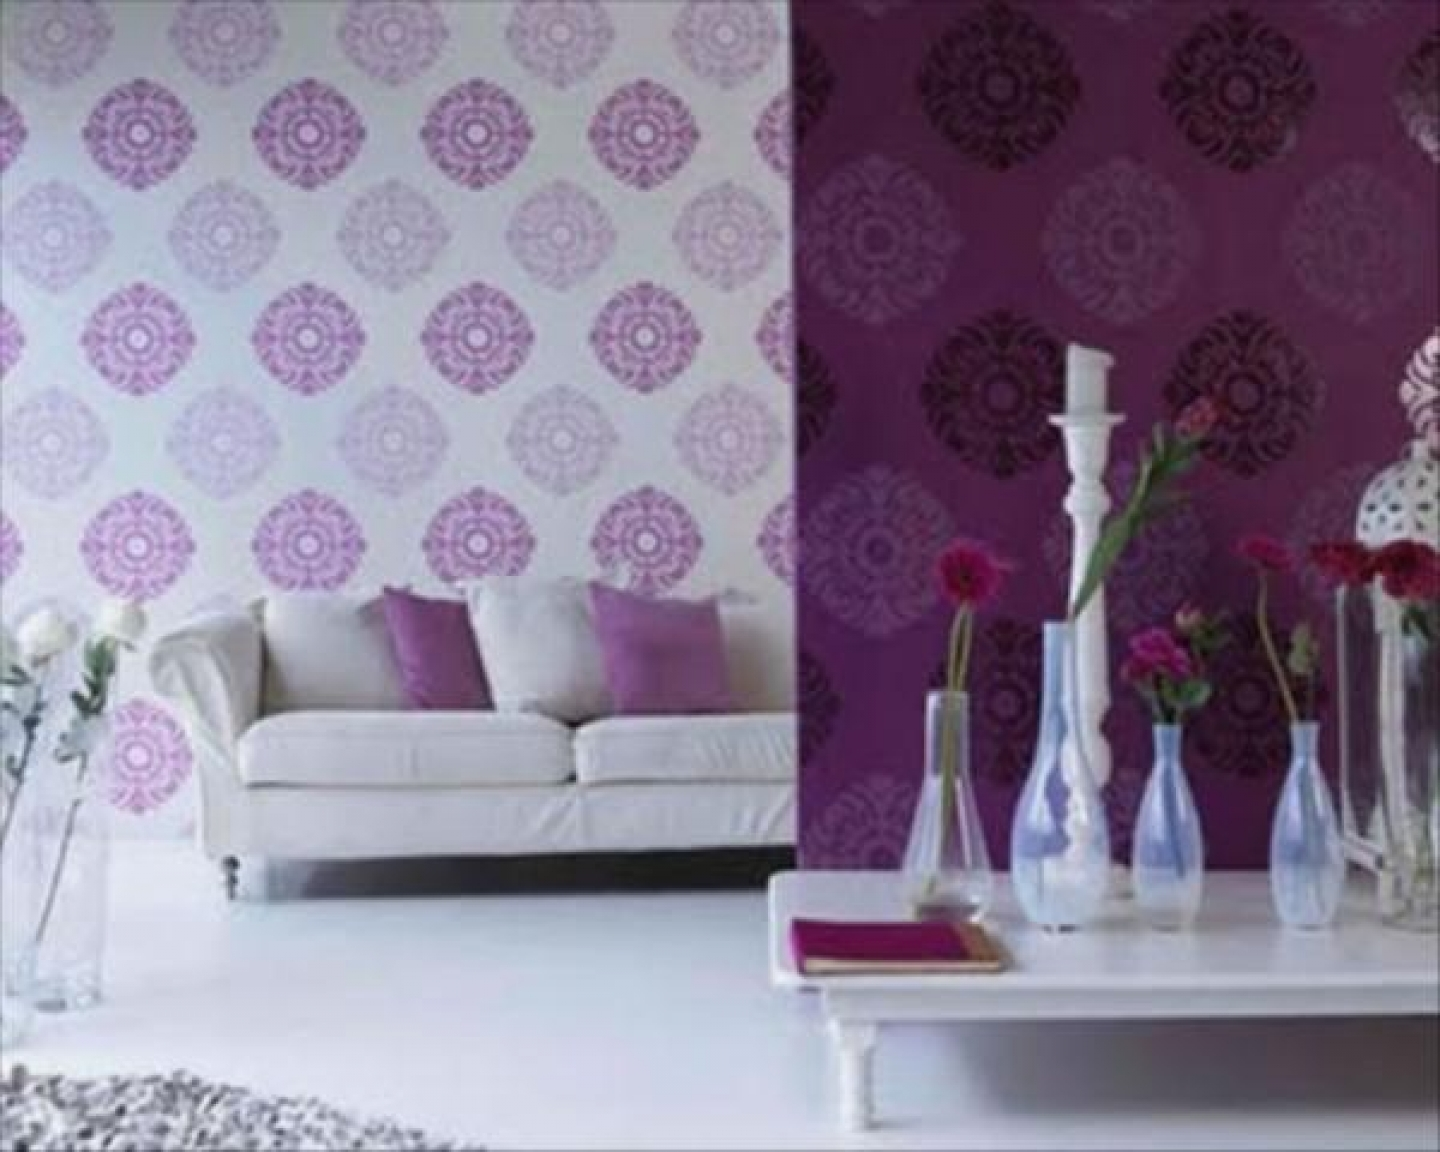 tags decor decorating decorating ideas floral wallpaper houses - Wallpapers Designs For Home Interiors